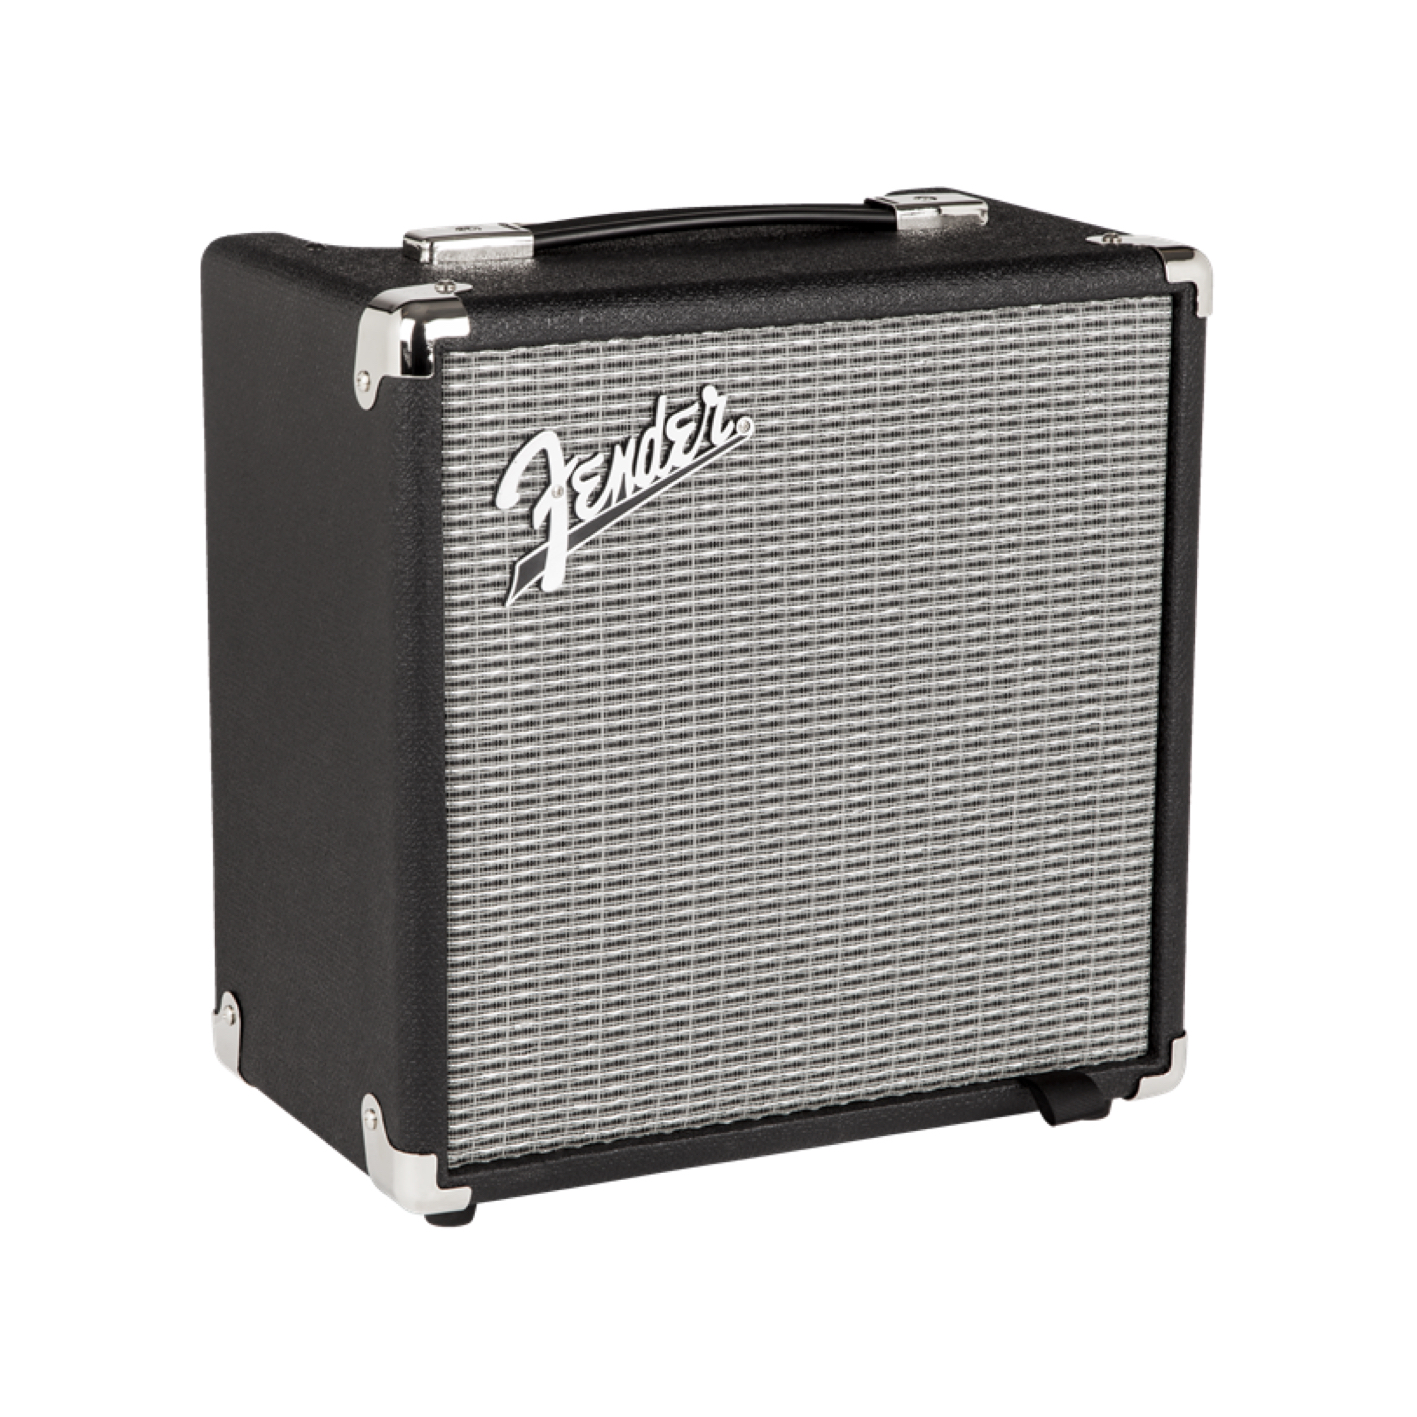 Fender Rumble 15 15w Bass Amp